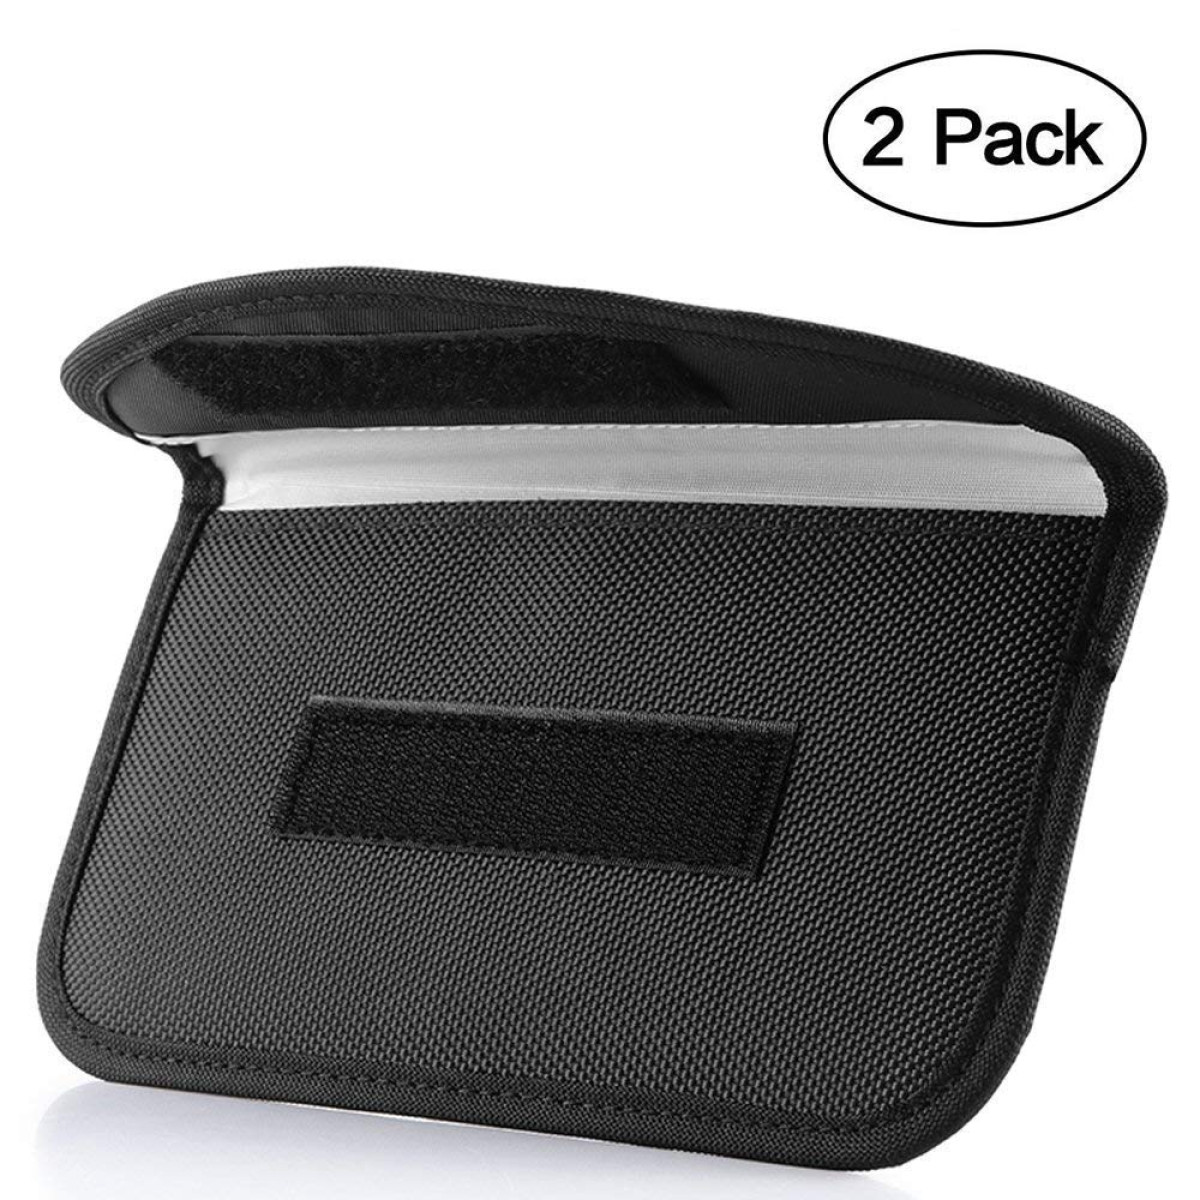 Signal Blocking Bag, ONEVER [2 Pack] GPS Rfid Faraday Bag Shield Cage Pouch  Wallet Phone Case for Cell Phone Privacy Protection and Car Key FOB,